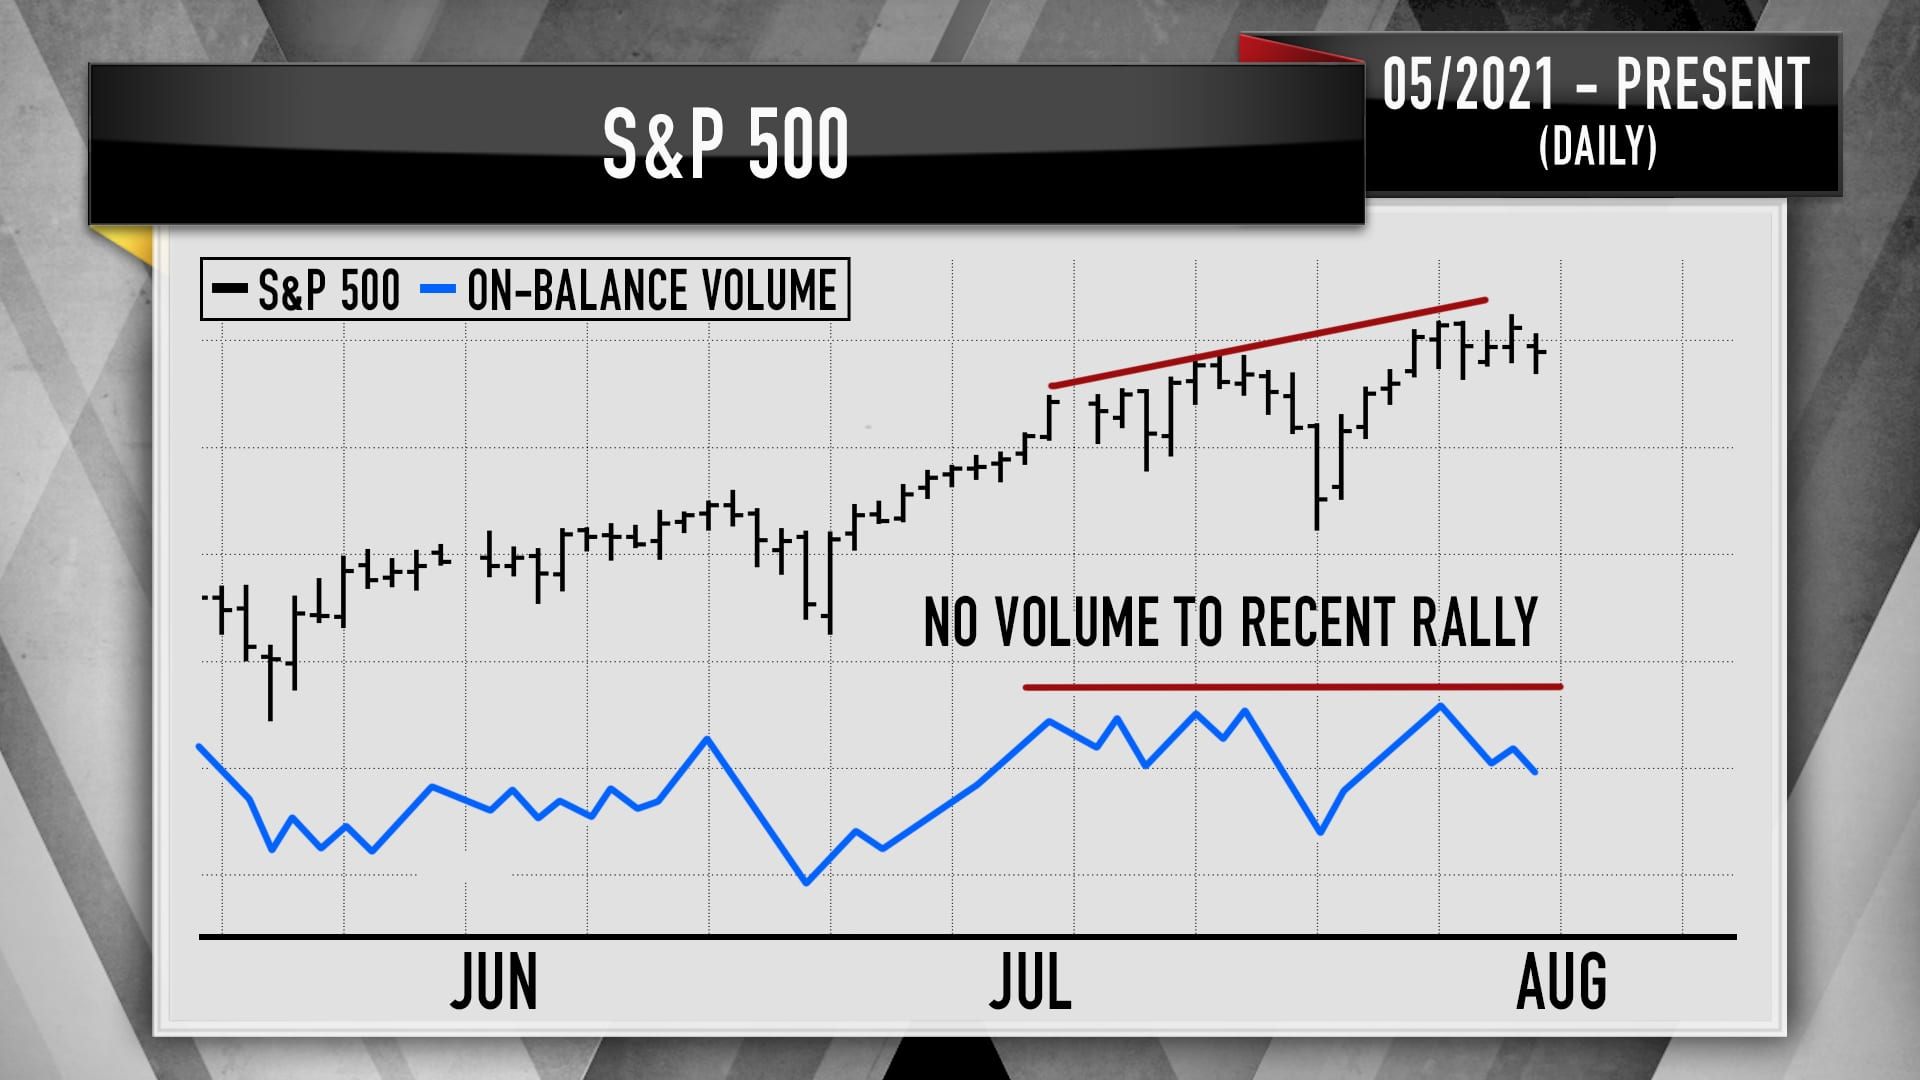 Recent on-balance volume for the S&P 500, based on technical analysis from Larry Williams.